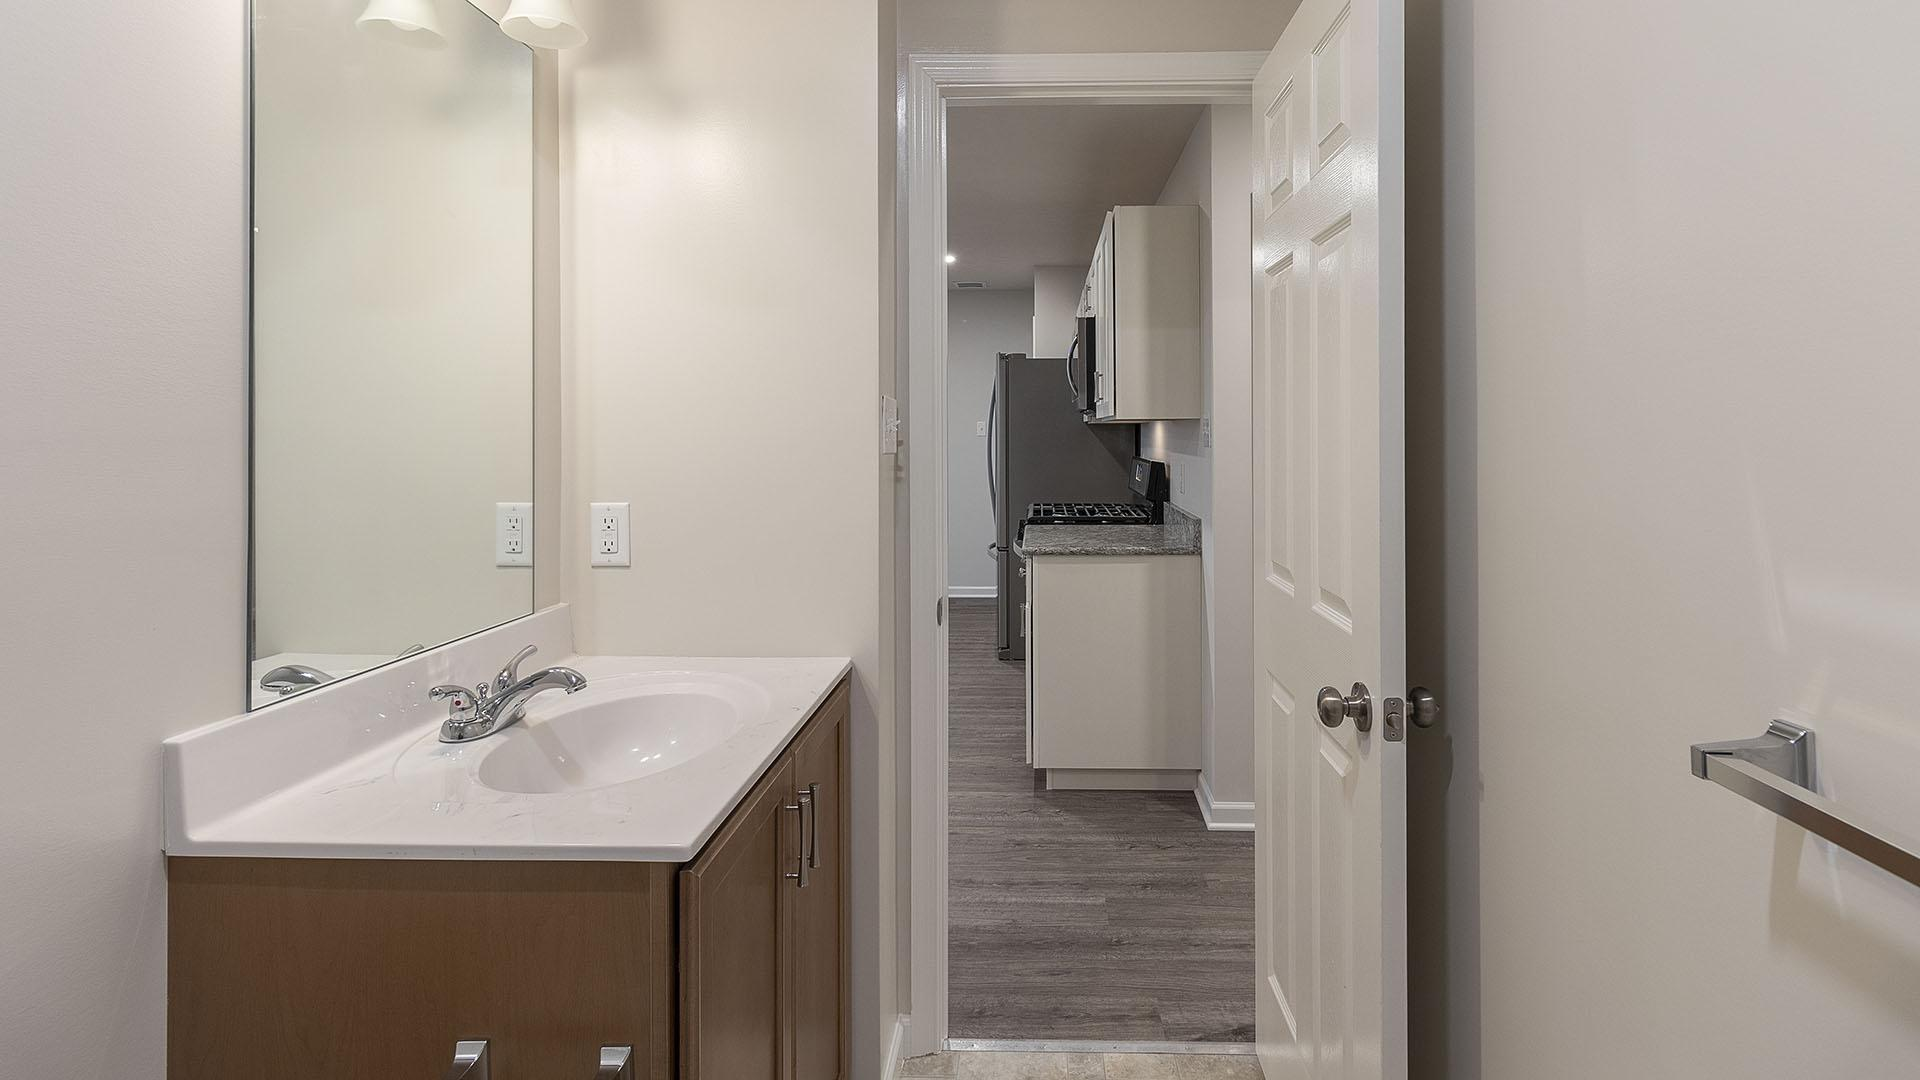 Bathroom featured in the Glynwood By S & A Homes in State College, PA